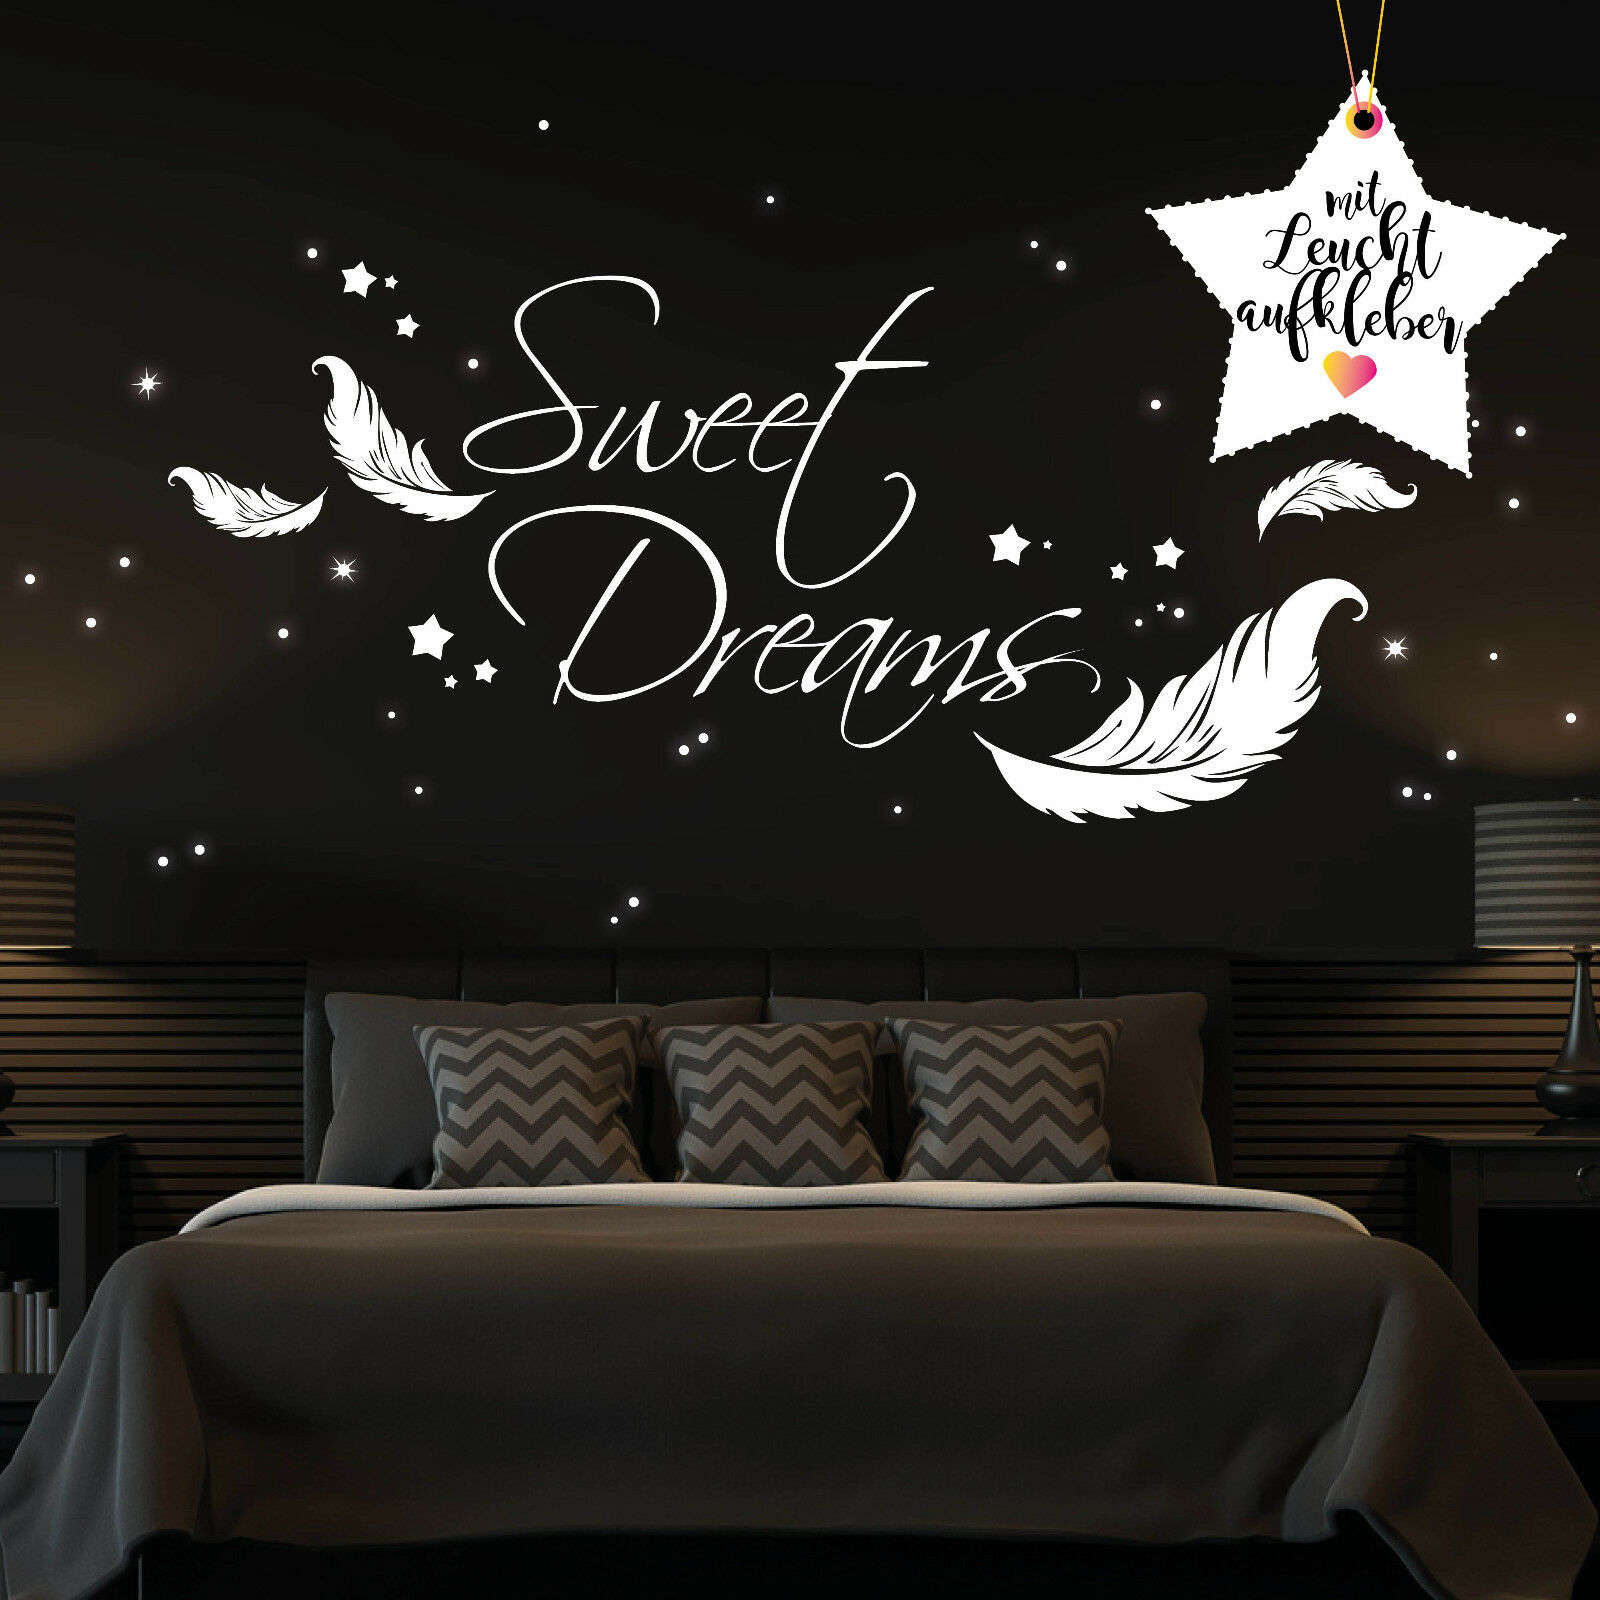 WALL TATTOO Sweet Dreams with Glowing Stickers wl12342 Wall Stickers ...